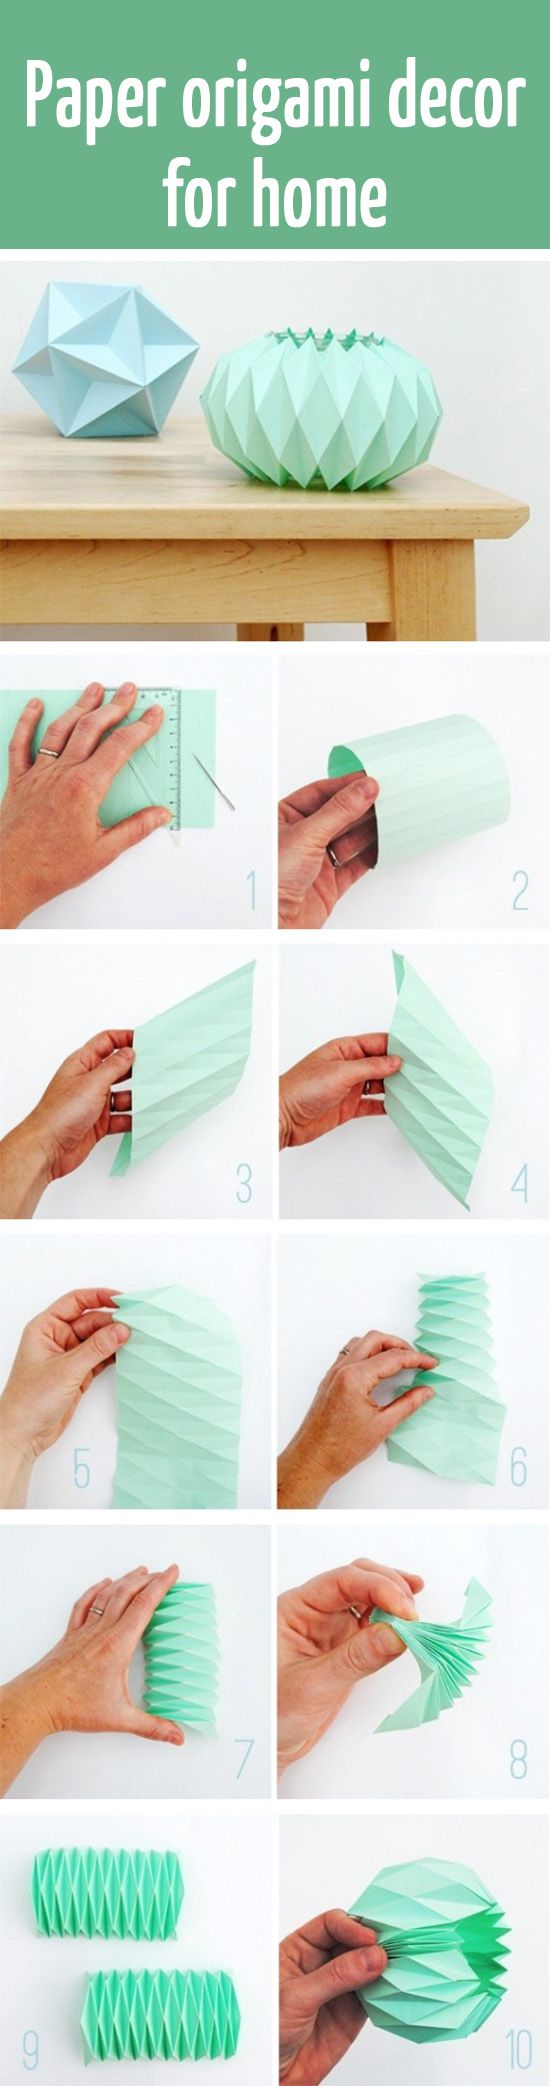 14 Best Diy And Crafts Images On Pinterest Creative Paper 3d Origami Peacock Diagram Stick Tail D Album Jimena Decor For Home Tutorial